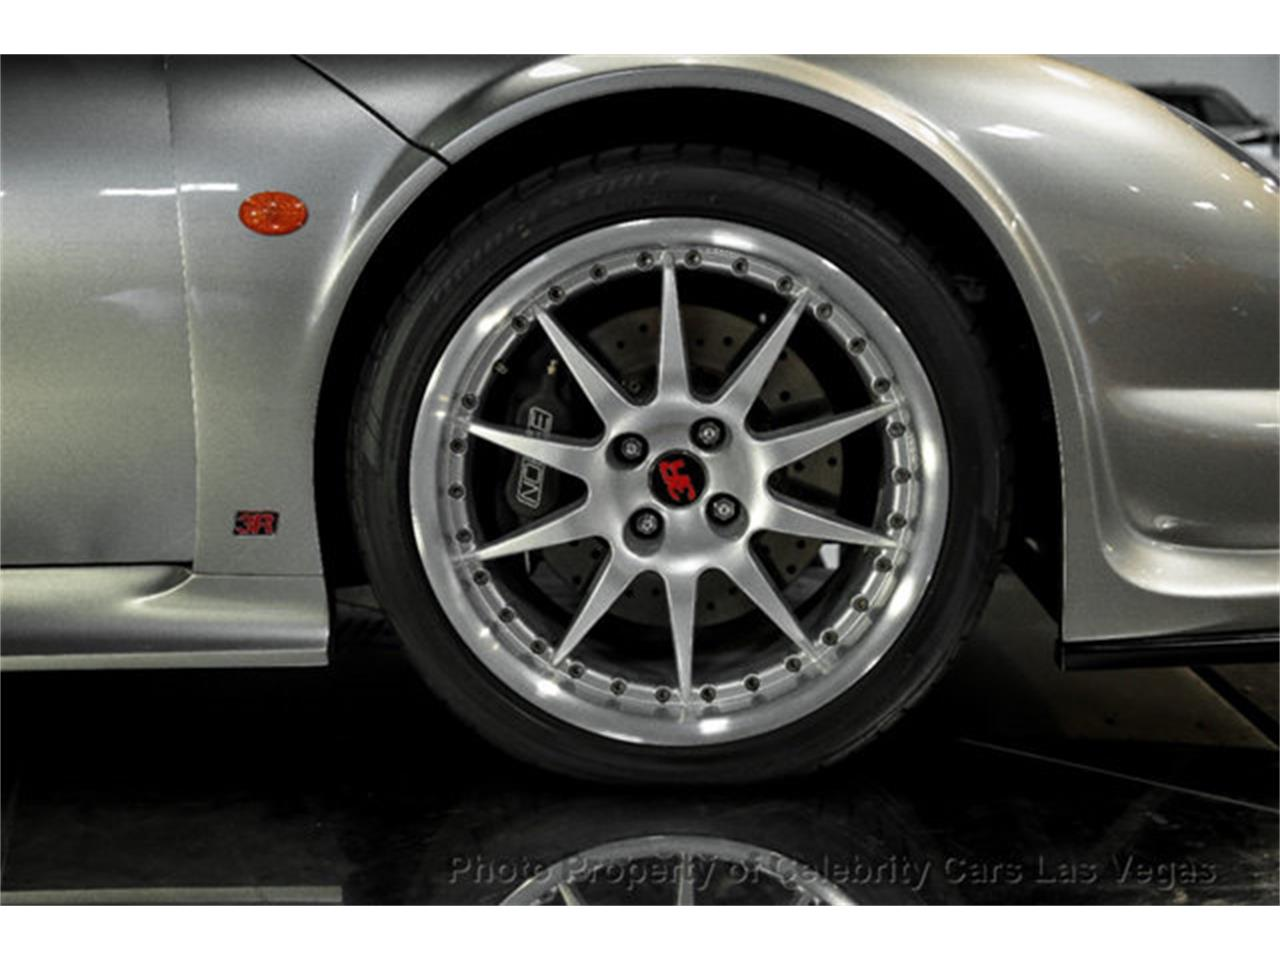 Large Picture of 2004 M12 GTO-3R located in Nevada - $54,900.00 Offered by Celebrity Cars Las Vegas - OY16